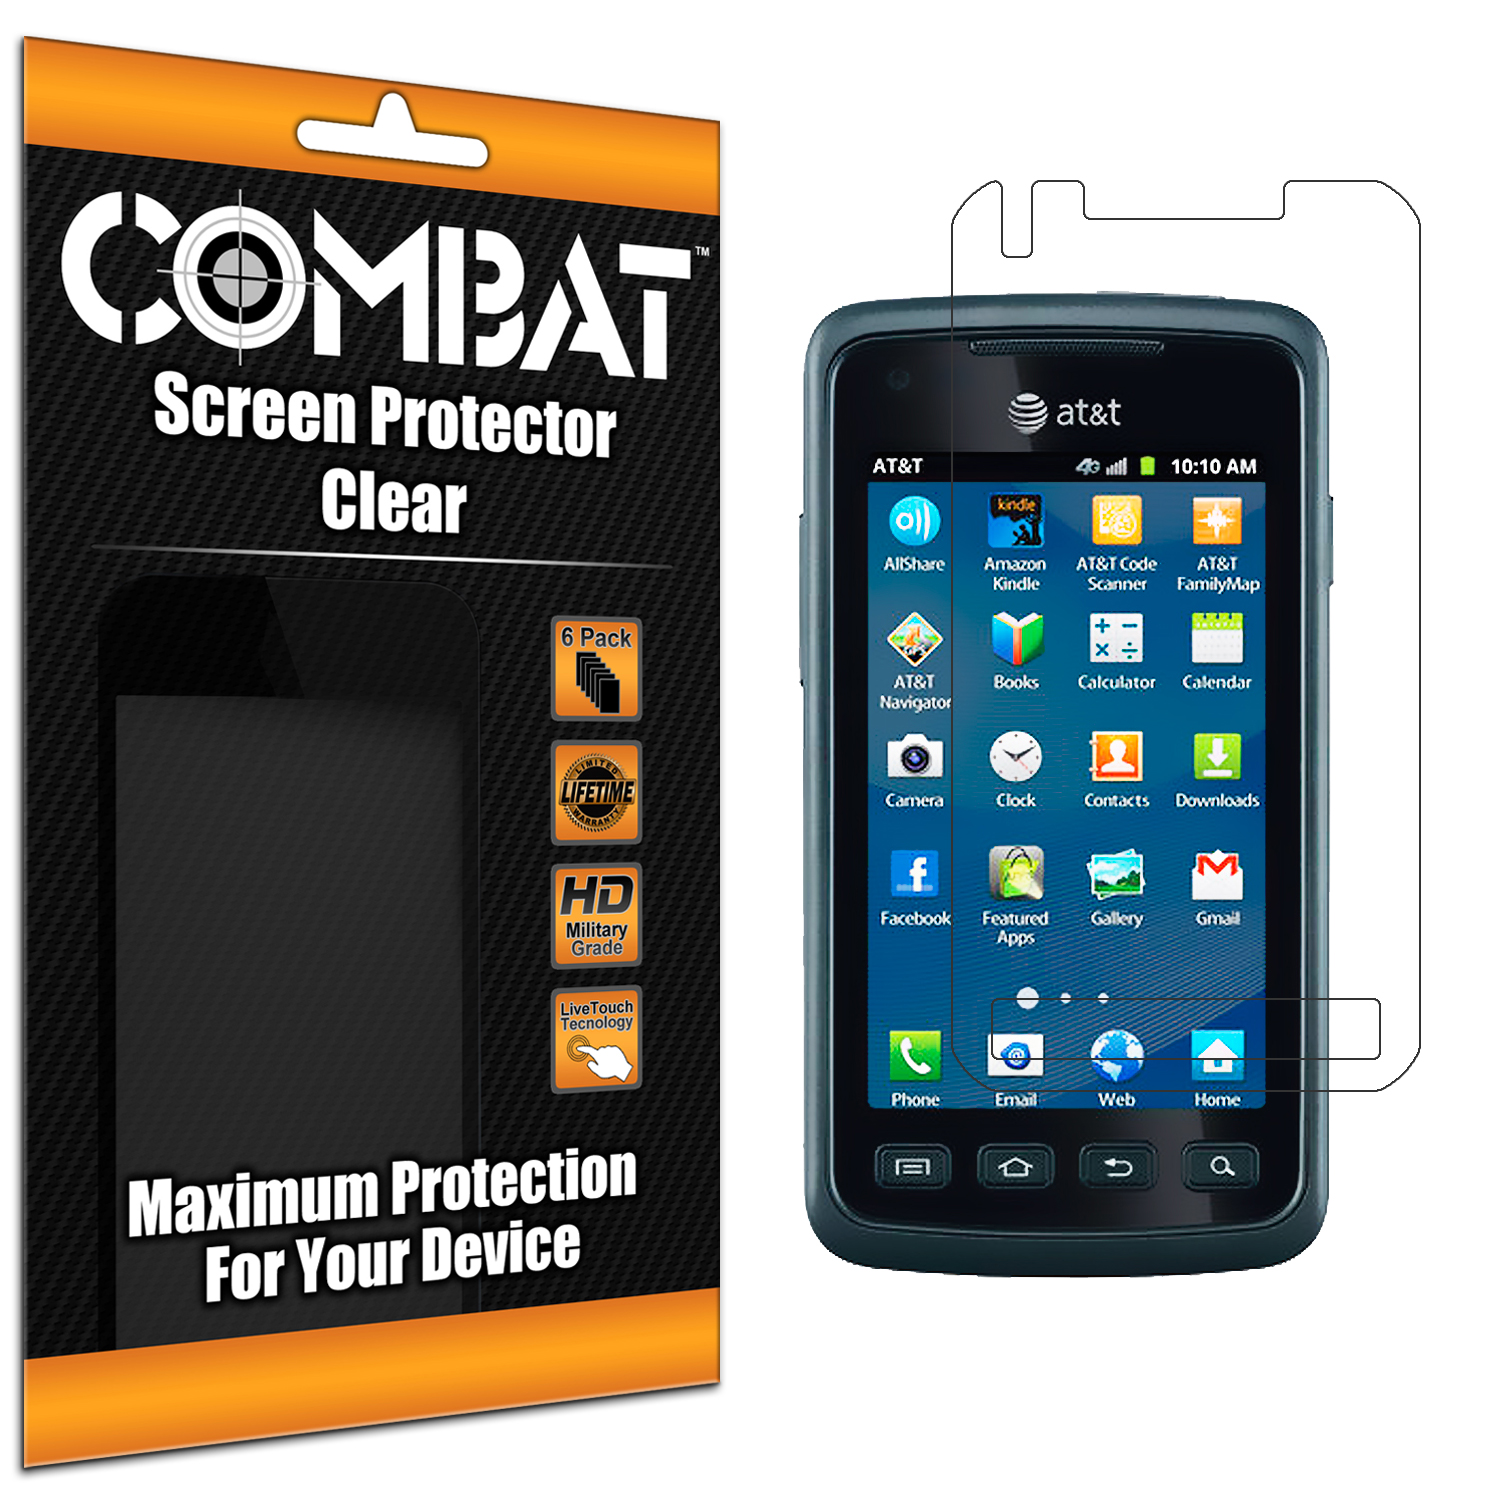 Samsung Rugby Smart i847 Combat 6 Pack HD Clear Screen Protector